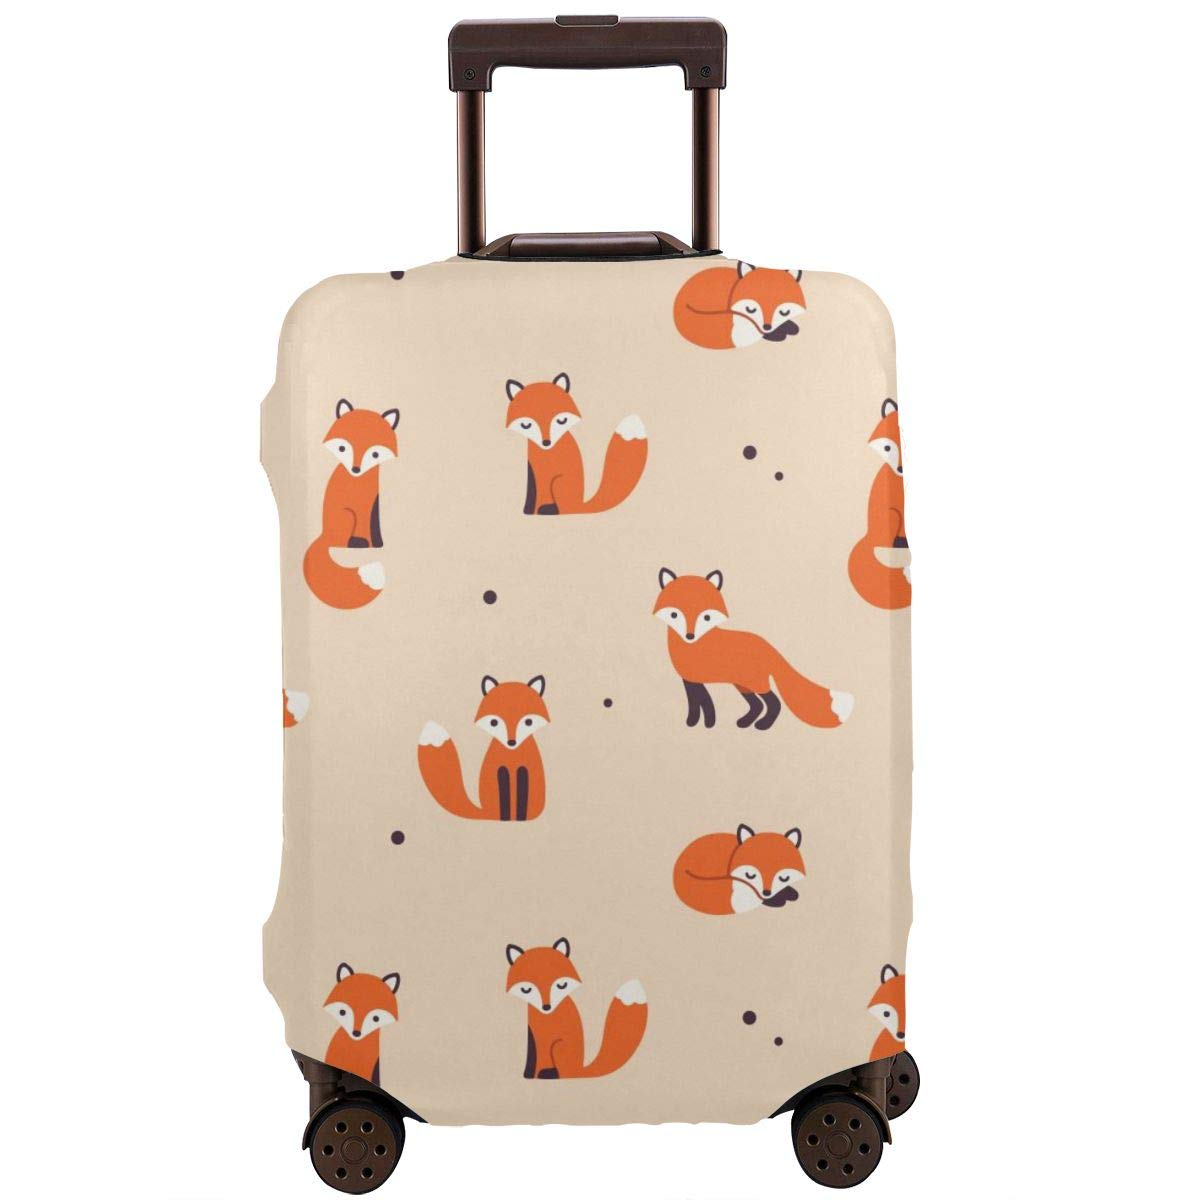 Cartoon Foxes Travel Luggage Cover Suitcase Protector Washable Zipper Baggage Cover